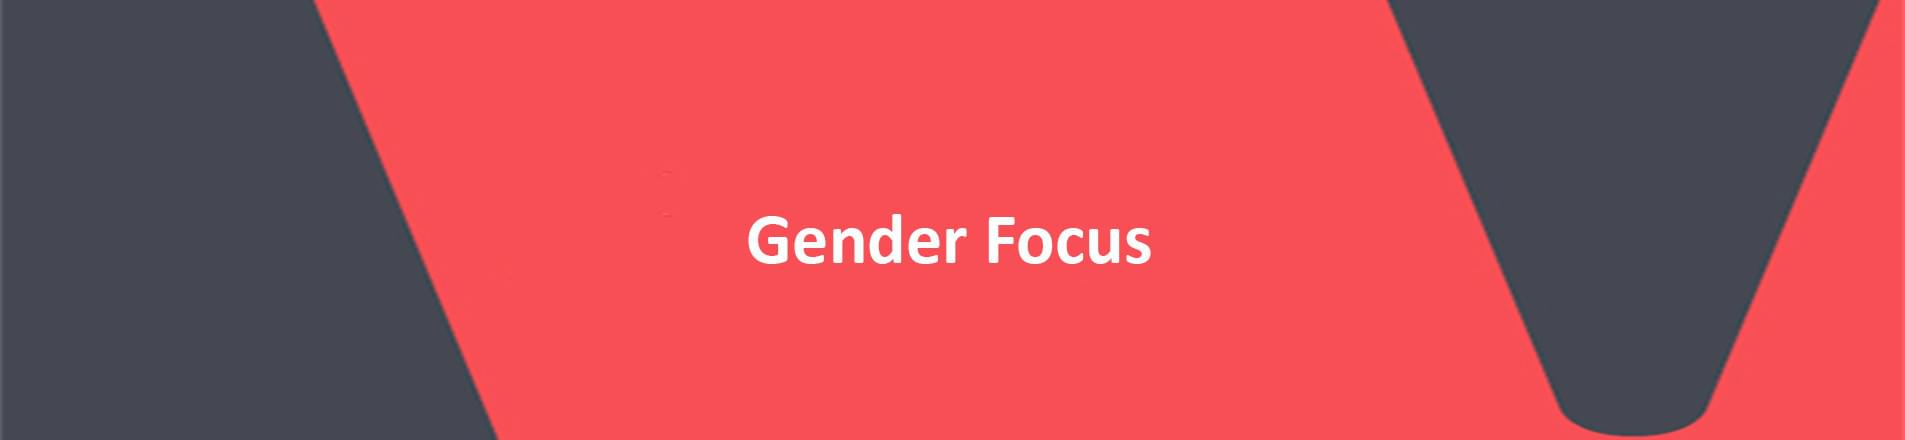 """Image of the words """"Gender Focus"""" with red background and white letters."""